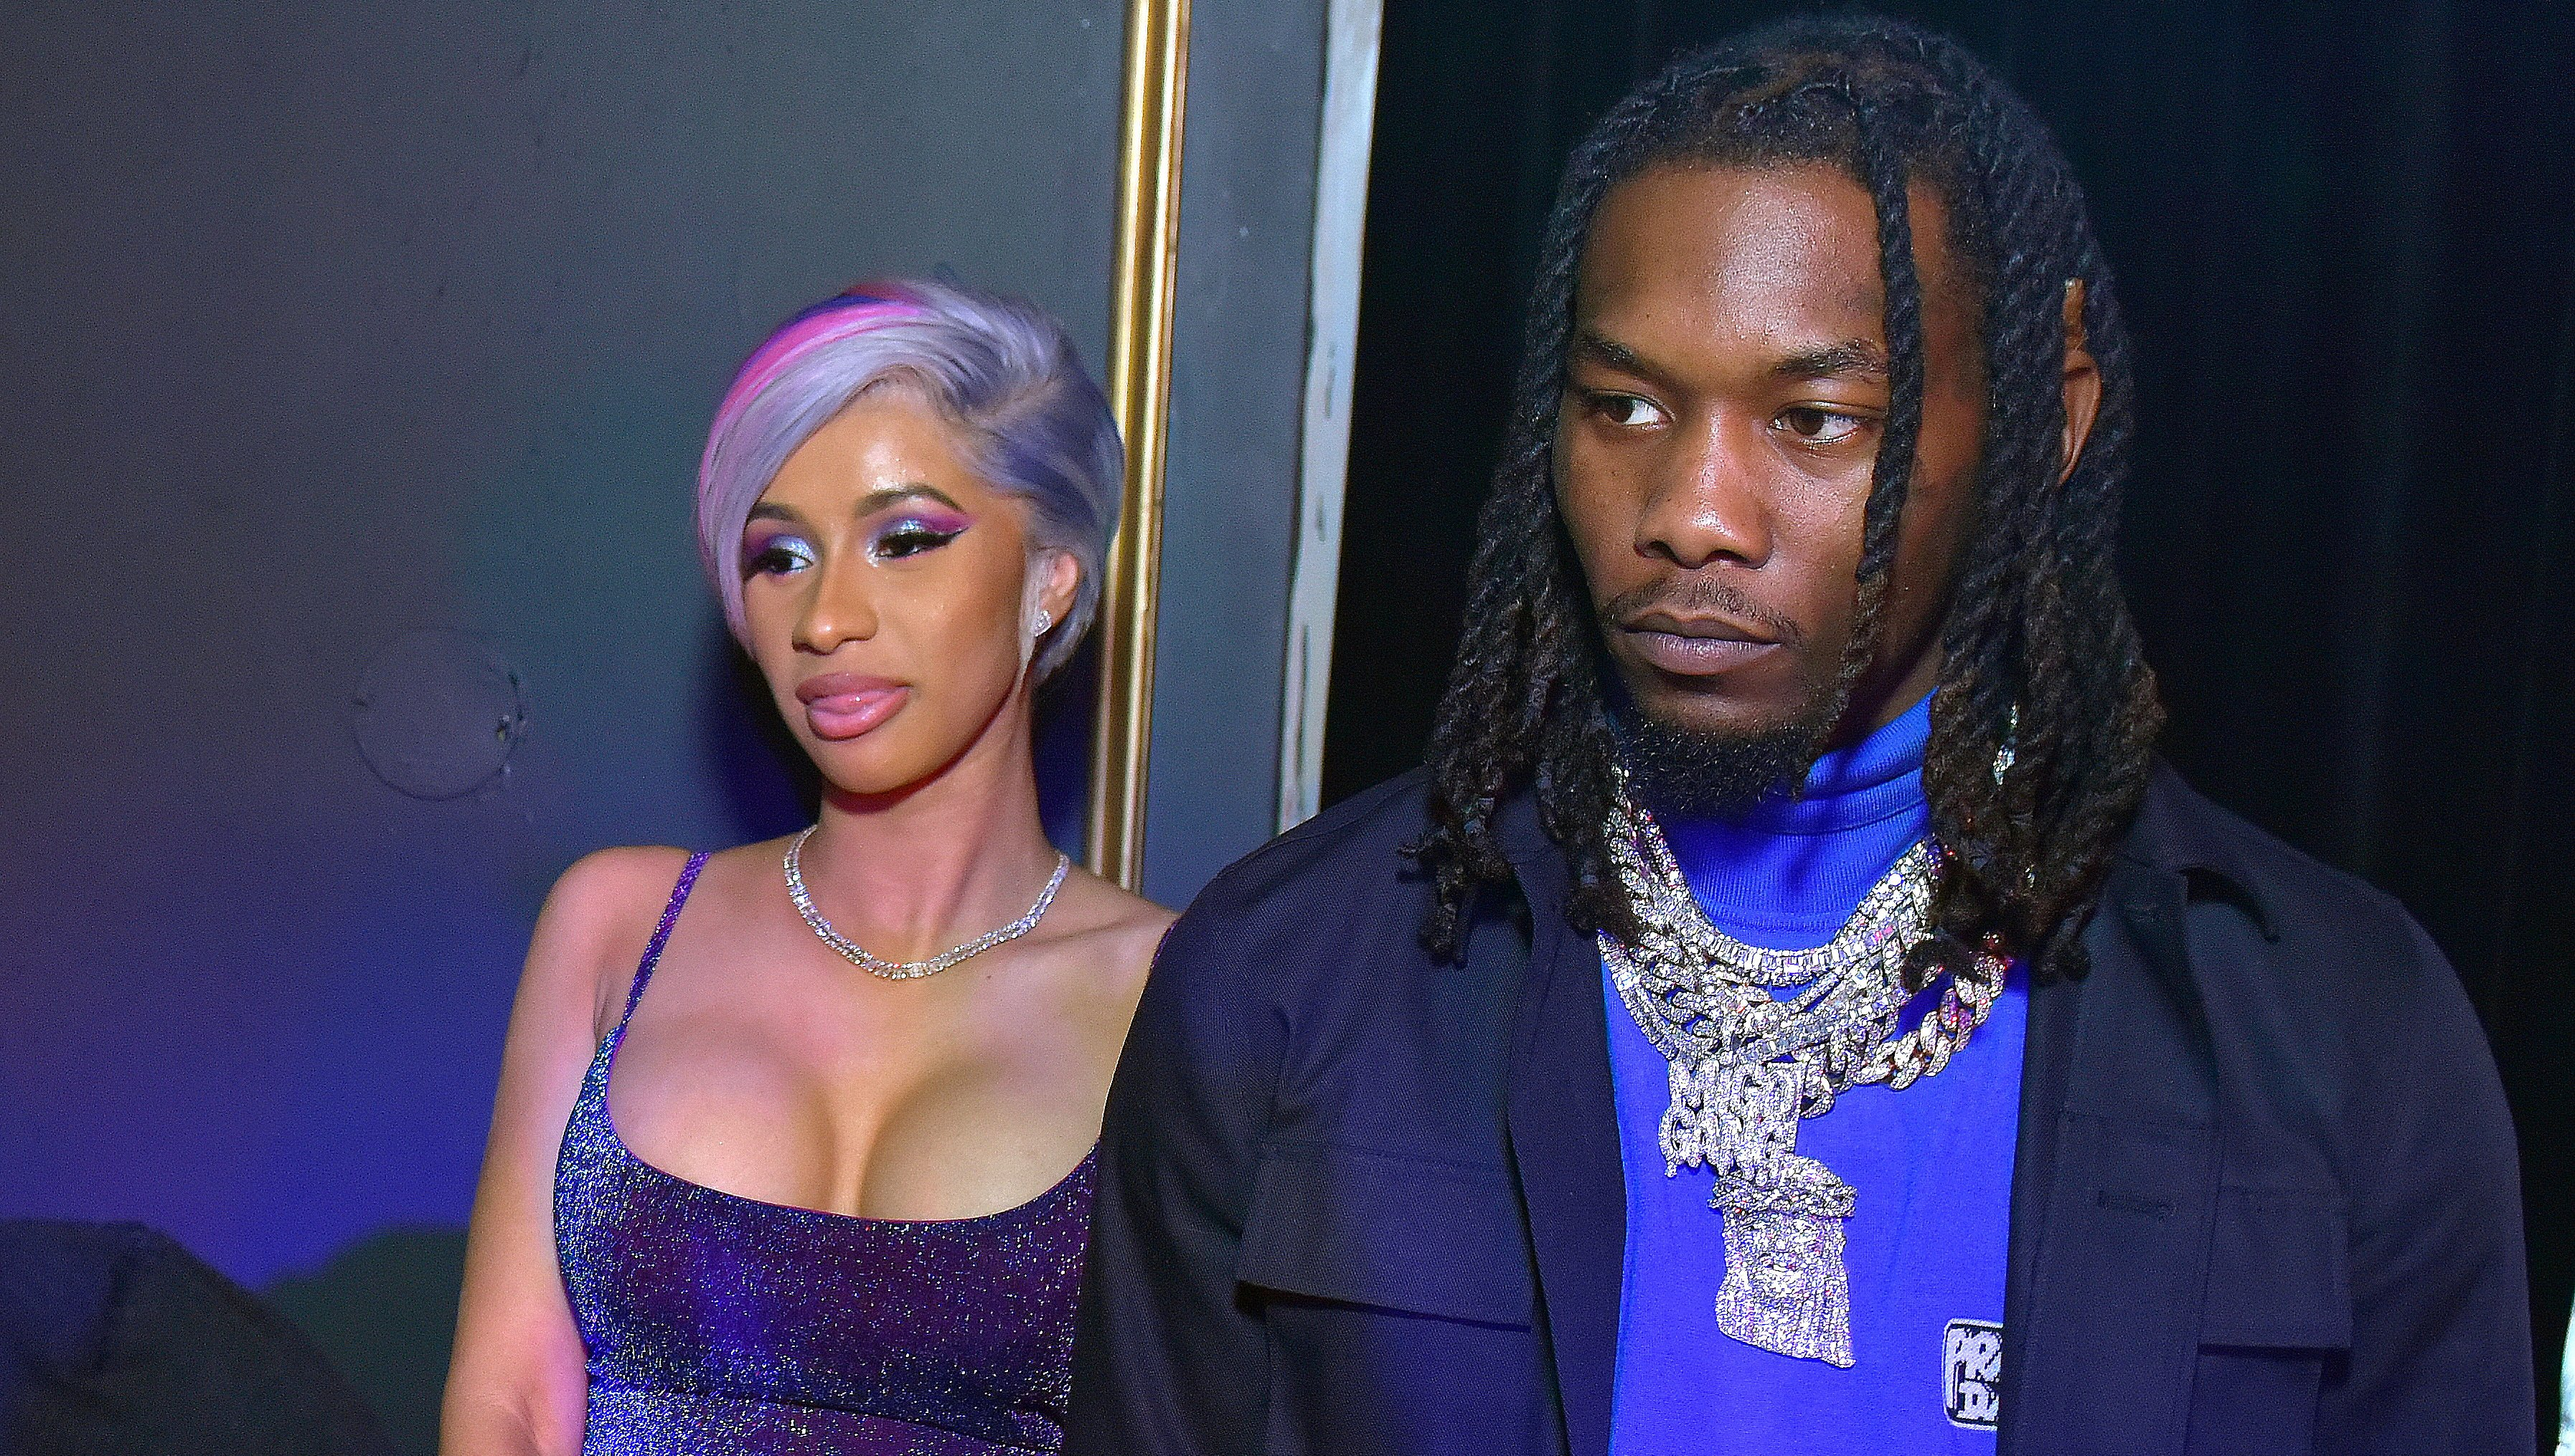 Cardi B Hints There's Hope for Her Relationship With Estranged Husband Offset